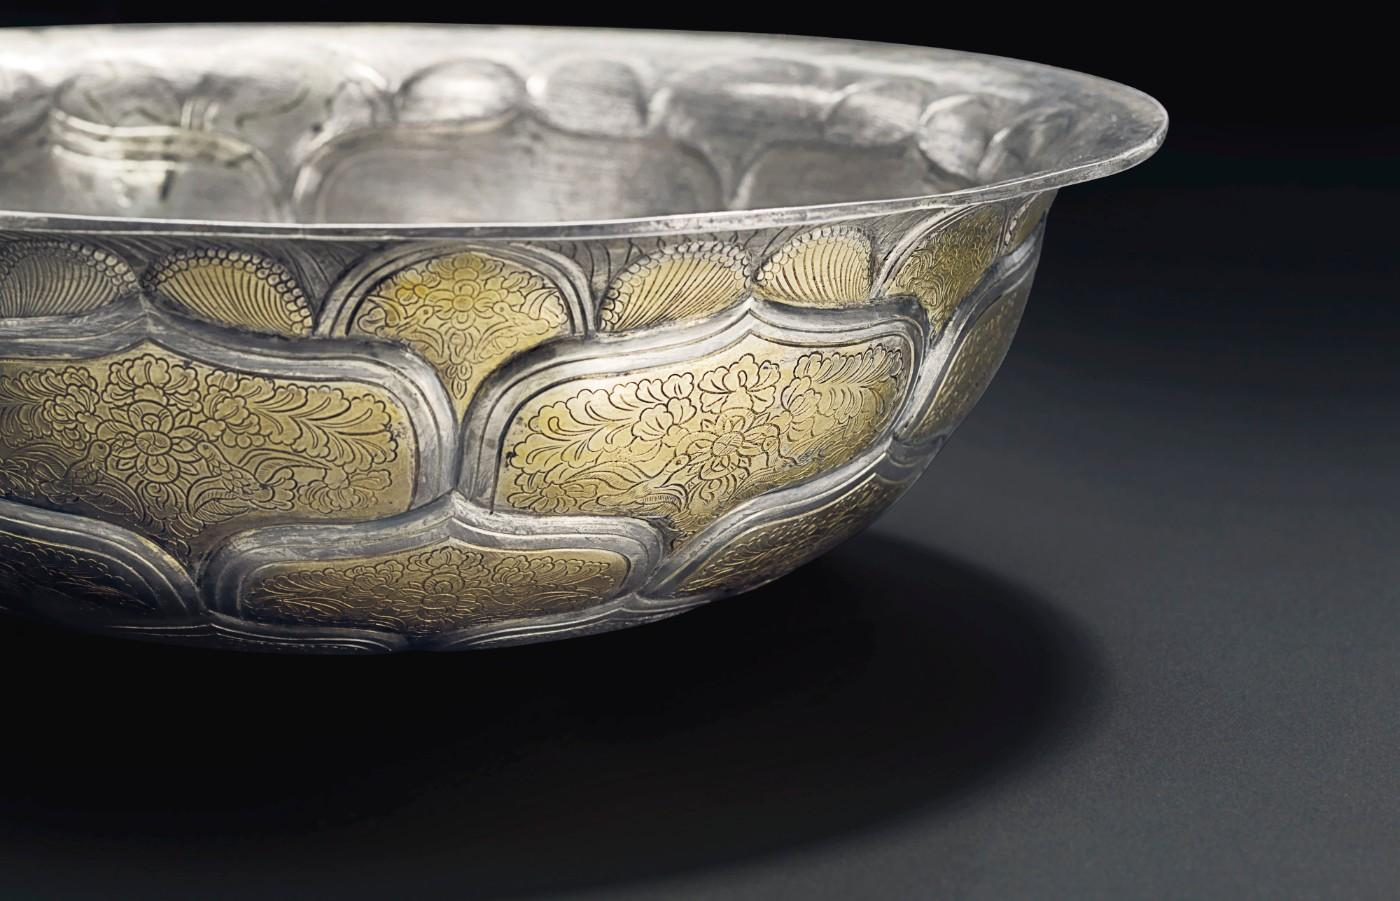 A very rare and important large parcel-gilt silver bowl, Tang dynasty (AD 618-907). Diameter 9⅝ in. Sold for $3,495,000.